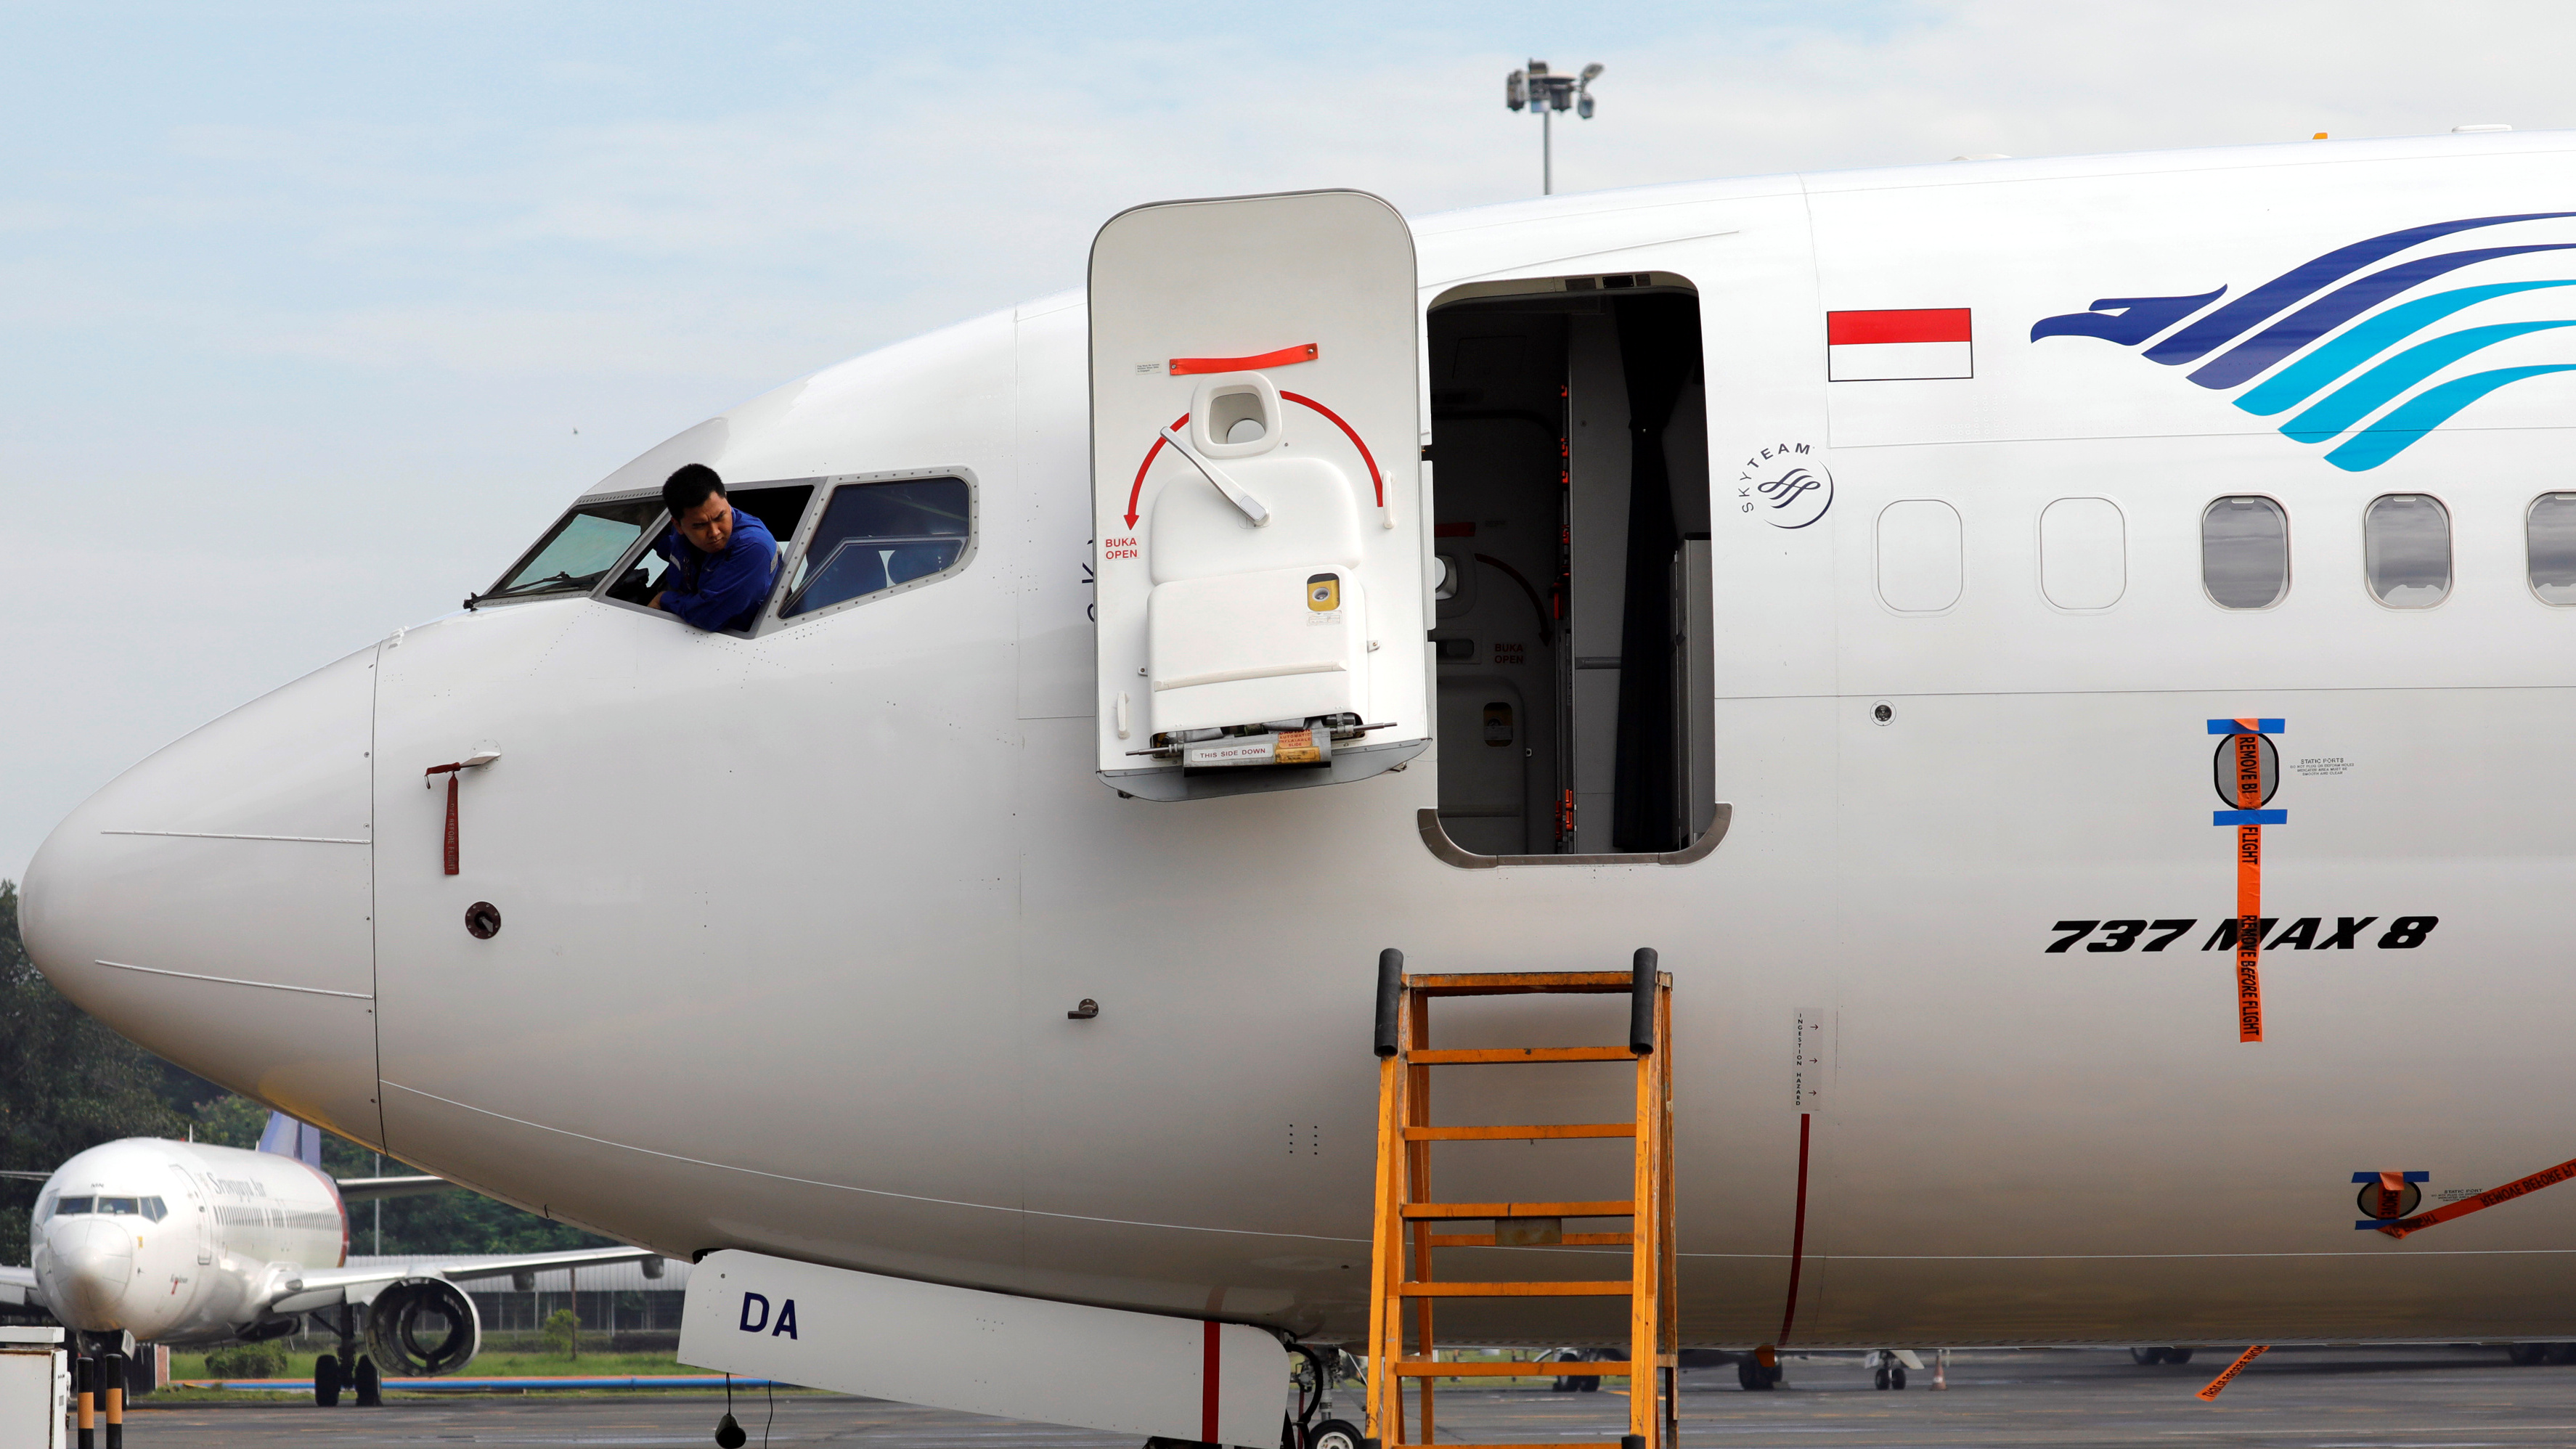 A technician looks out from the window as he checks Garuda Indonesia's Boeing 737 Max 8 airplane, that parked at the Garuda Maintenance Facility AeroAsia, at Soekarno-Hatta International airport near Jakarta, Indonesia, March 13, 2019.